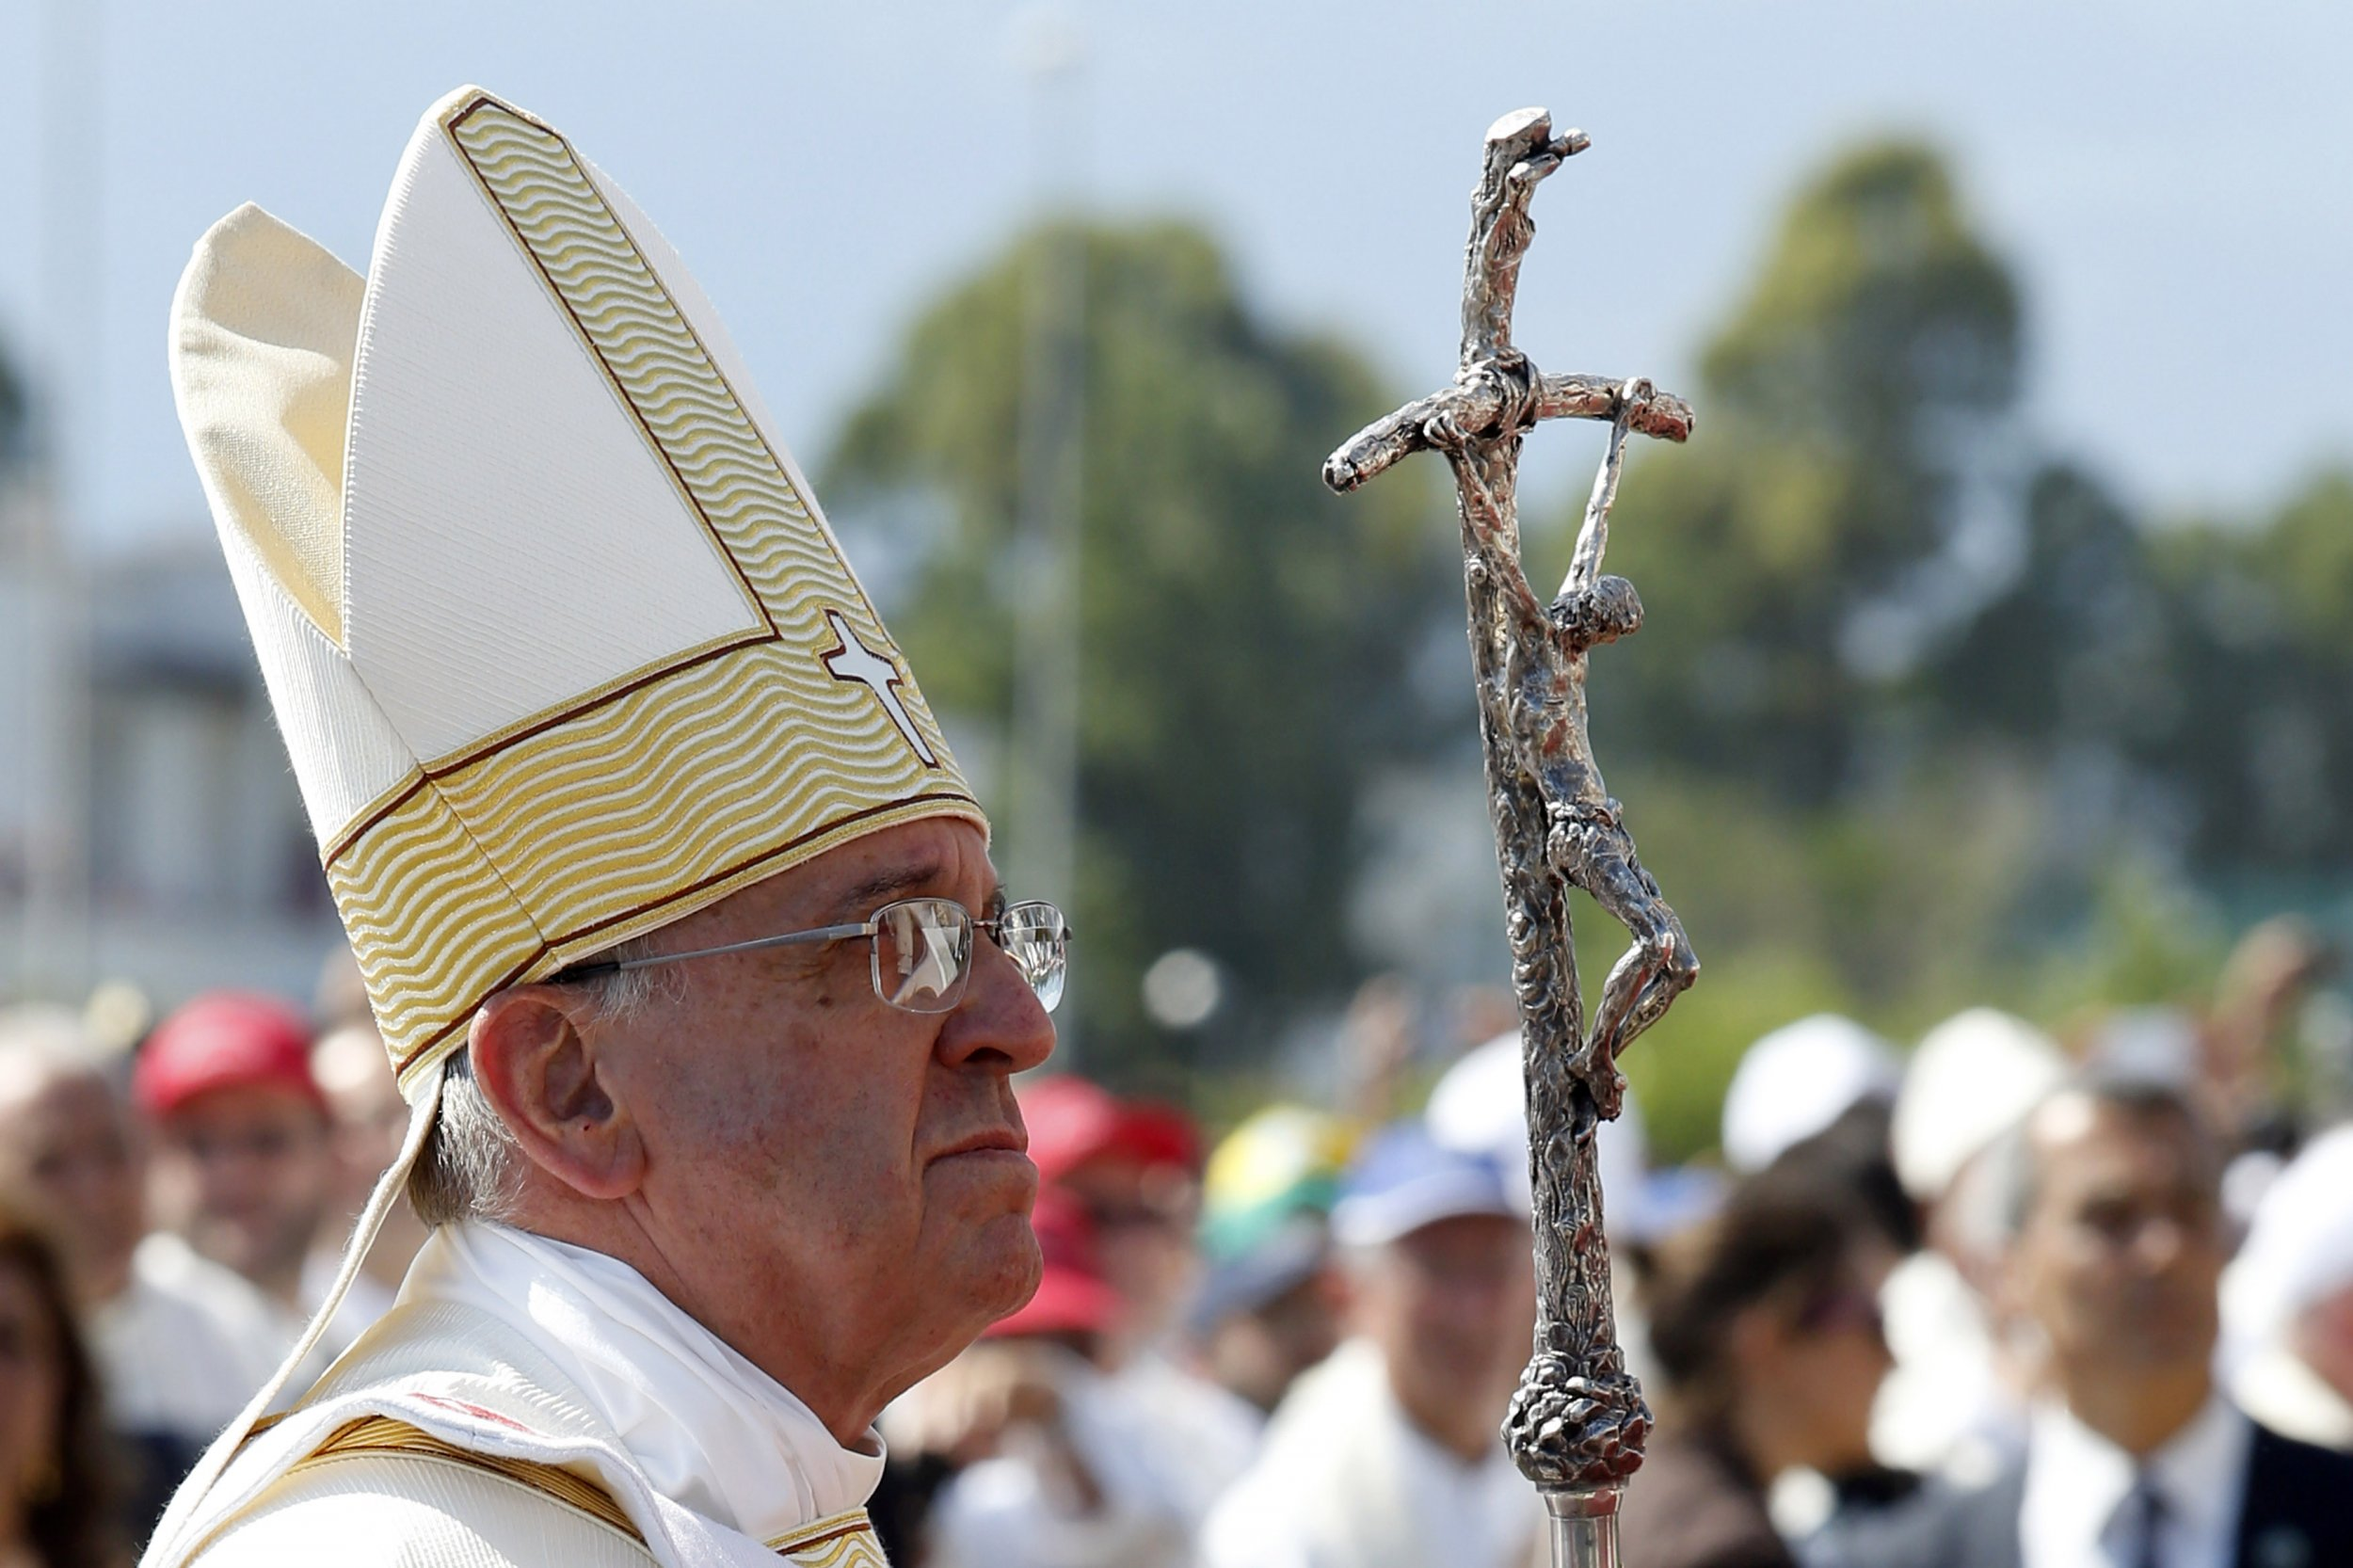 Official vatican stance on homosexuality and christianity